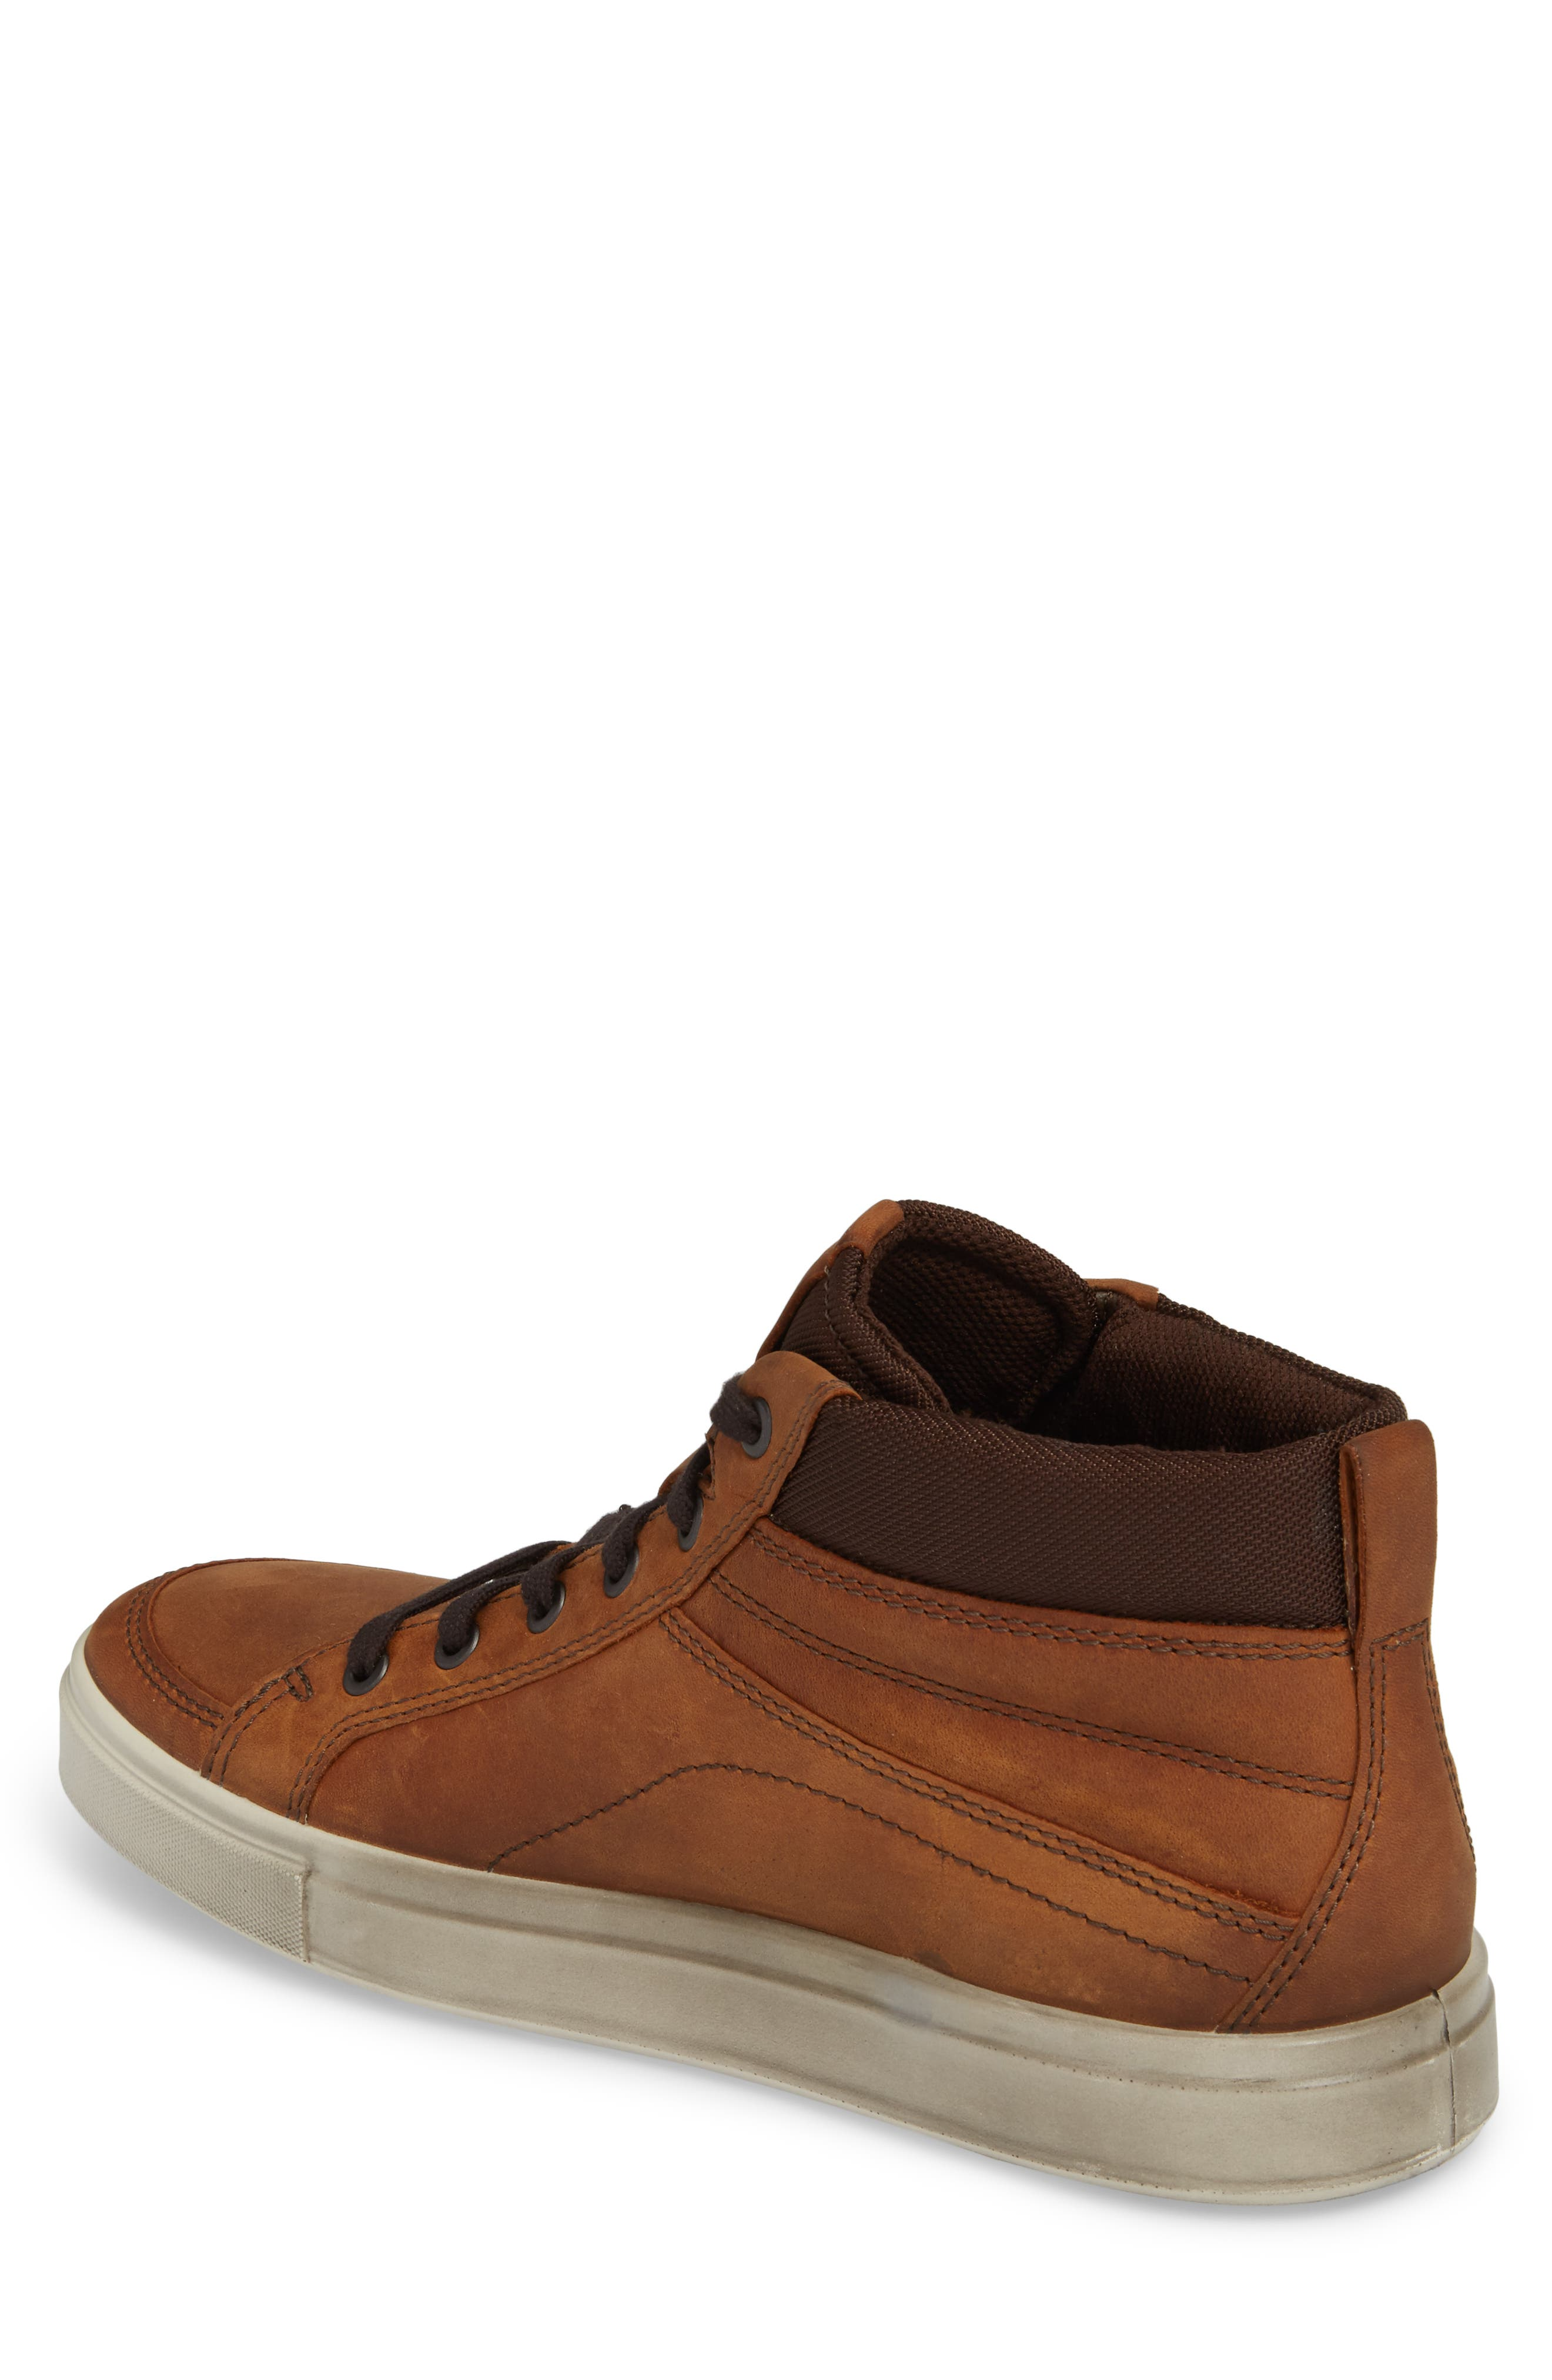 Kyle Sneaker,                             Alternate thumbnail 2, color,                             Amber Leather